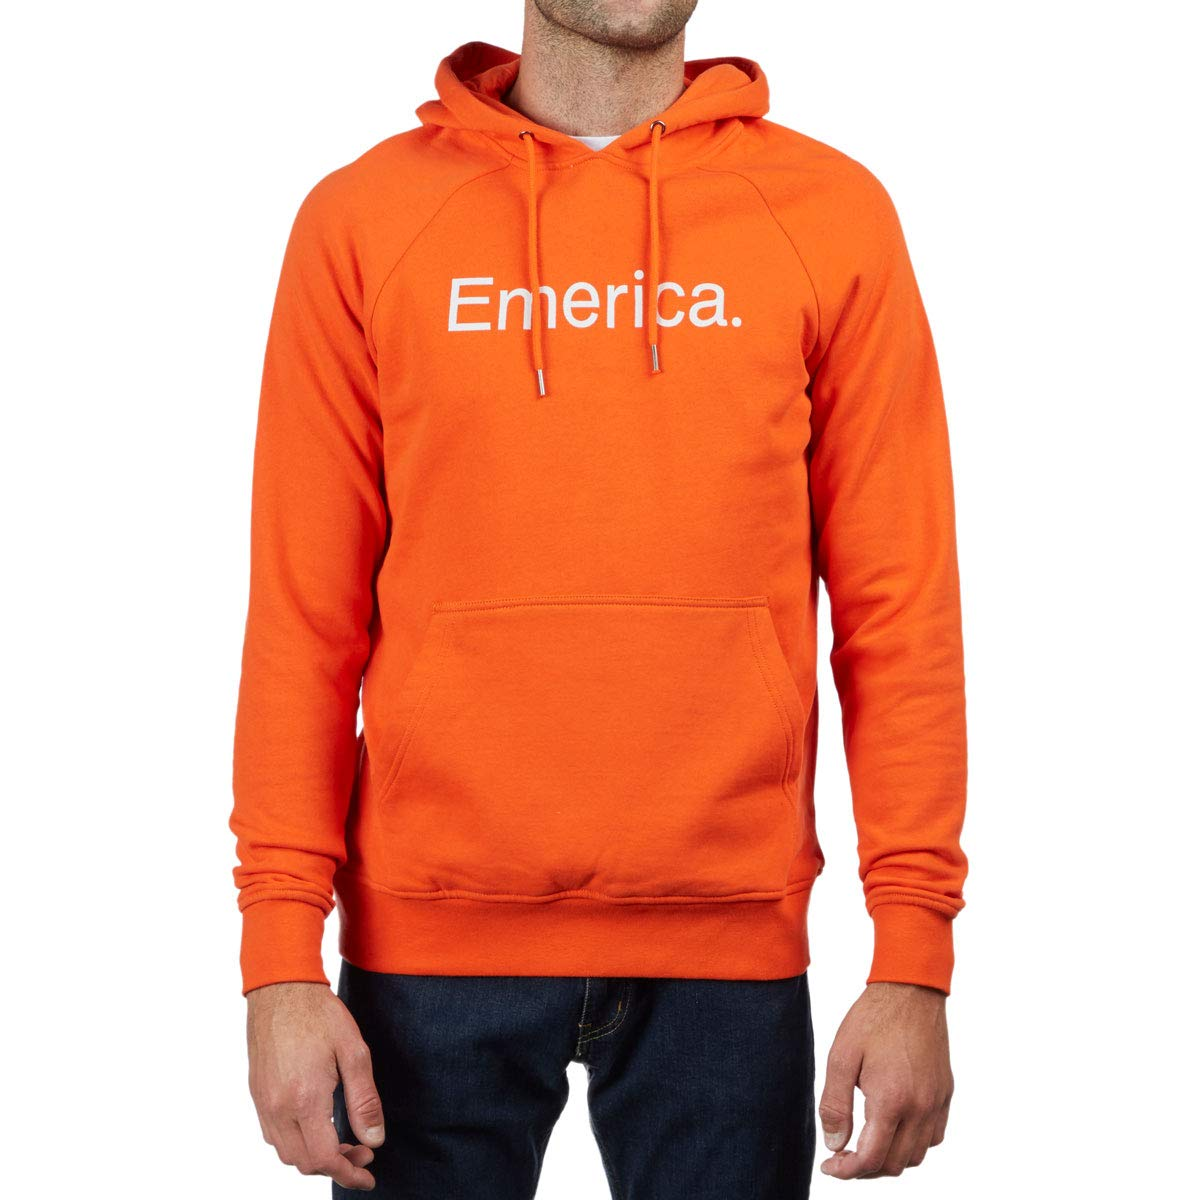 Emerica Purity Po Hood -Fall 2018- Orange